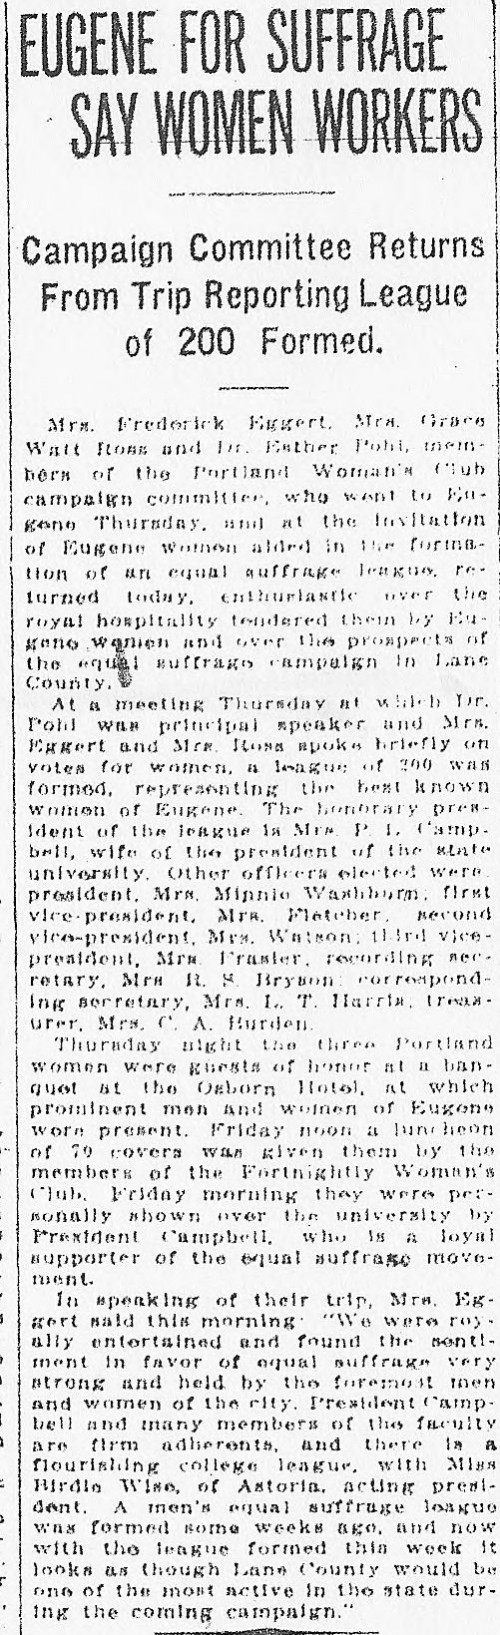 http://centuryofaction.org/images/uploads/PT_March_30_1912_7_Eugene_for_Suffrage_thumb.jpg